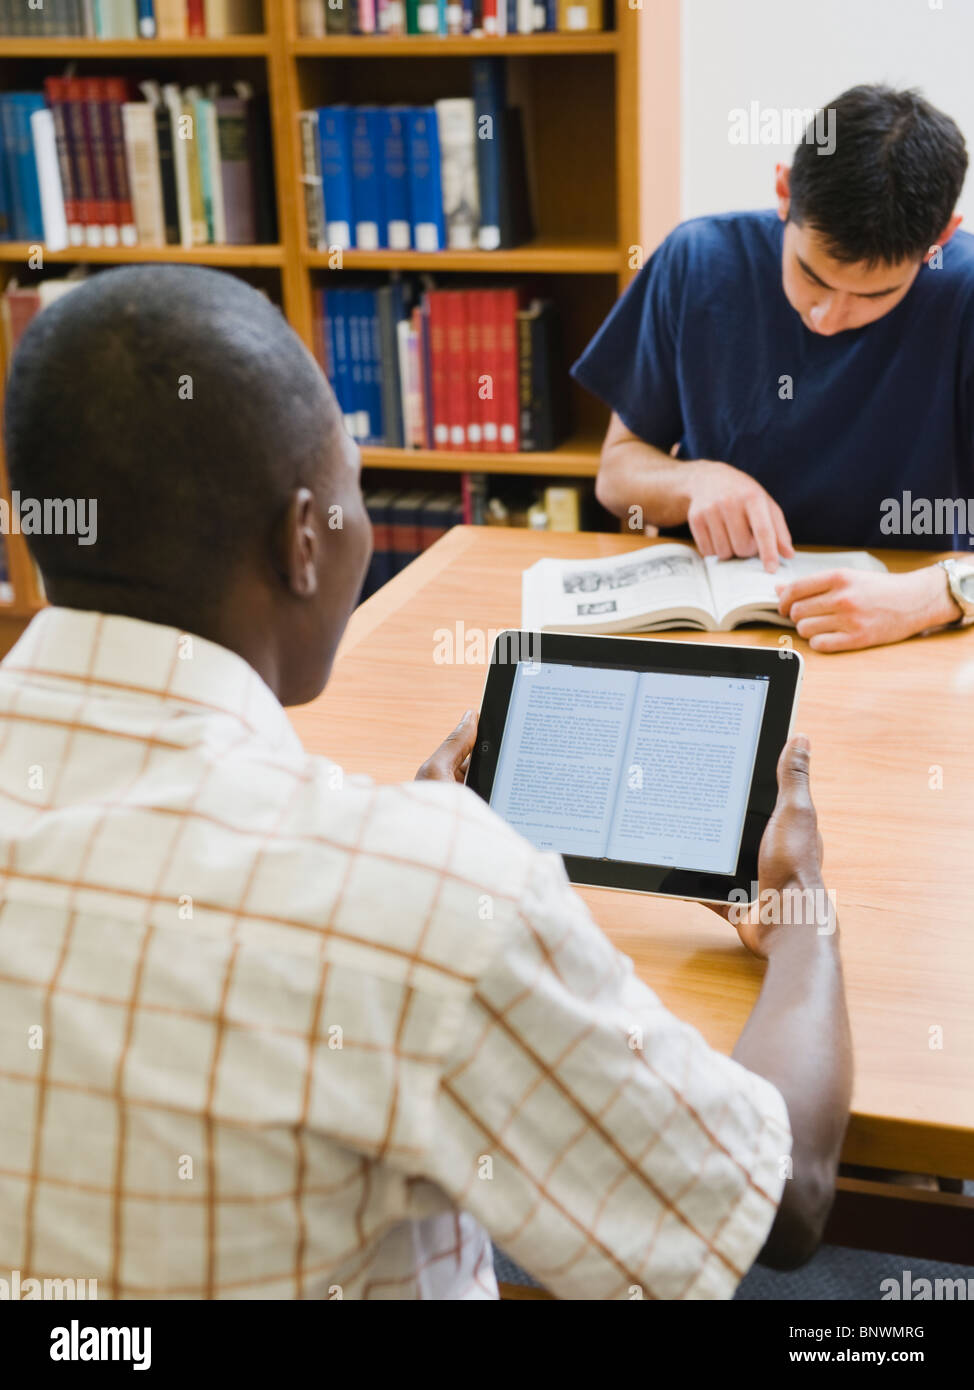 College students in library - Stock Image